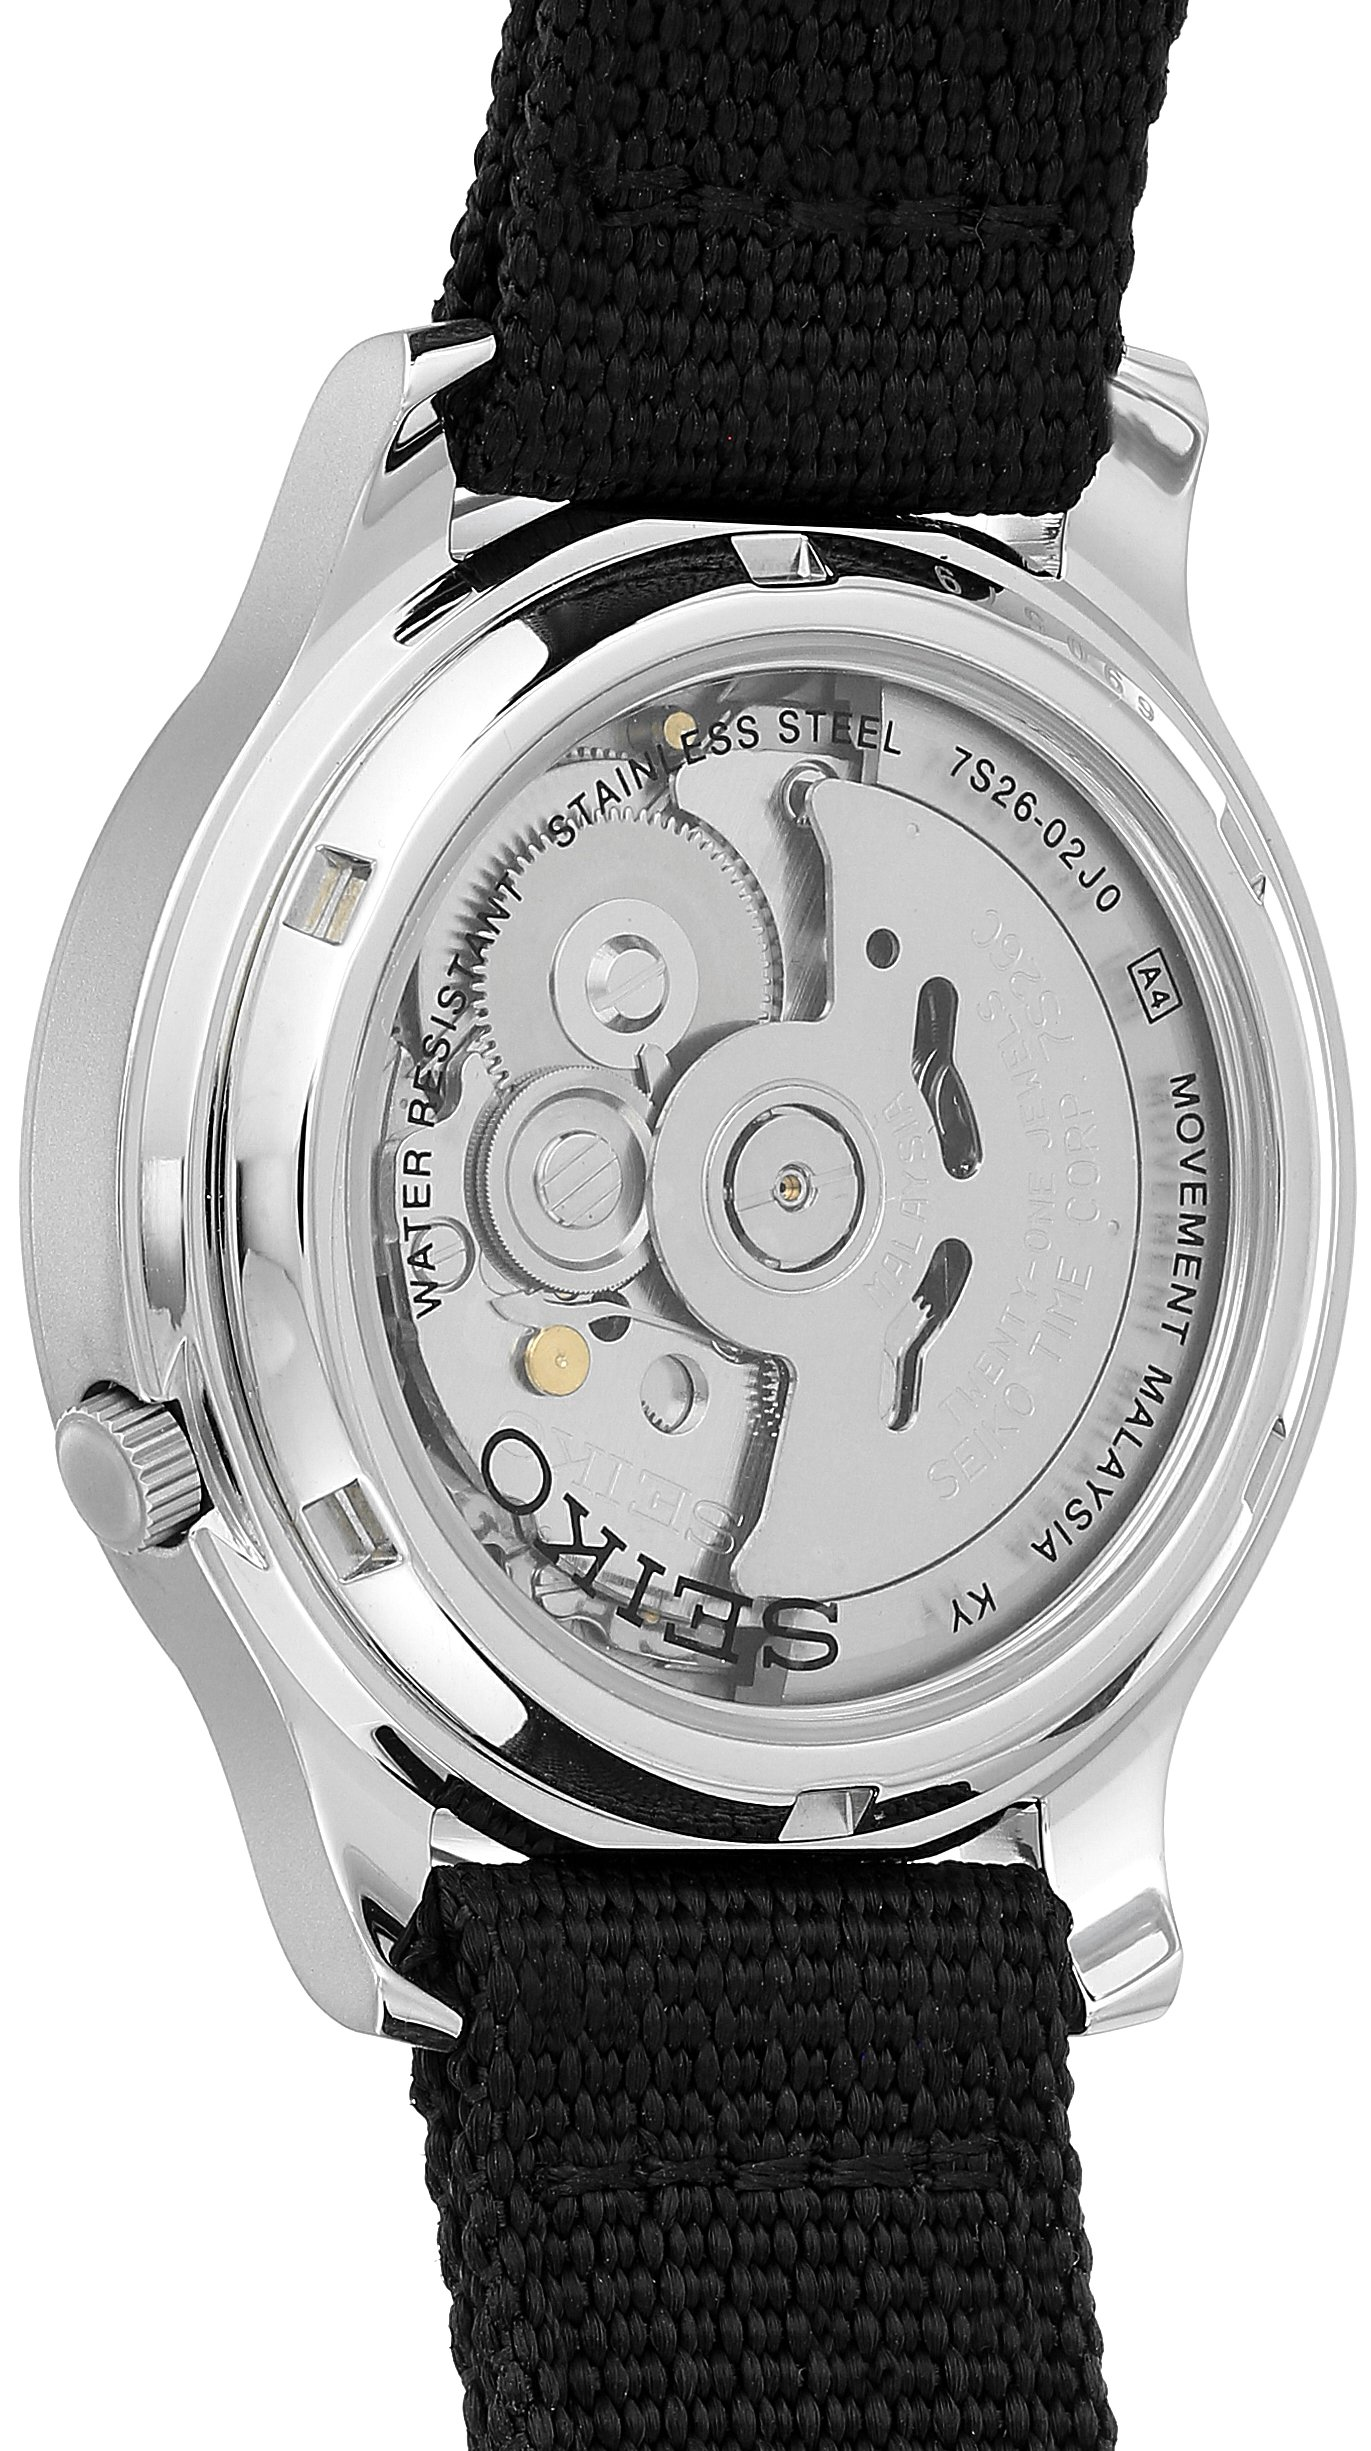 Seiko Men's SNK809 Seiko 5 Automatic Stainless Steel Watch with Black Canvas Strap by Seiko (Image #2)